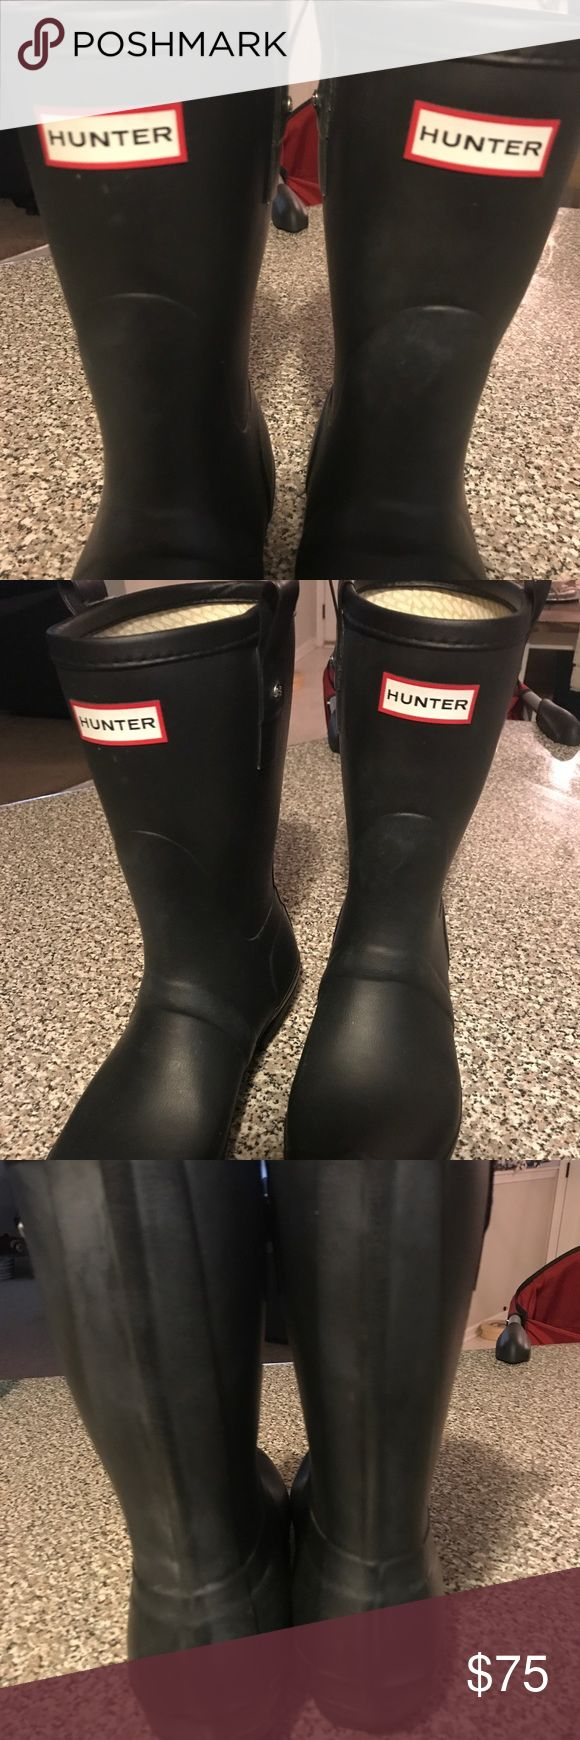 "HUNTER short original rain boots matte black In excellent condition! We bought them in a size ""9"" but hey are actually mens9 women 10 as stated on sticker on the bottom( see pics) sooo they are way too big! I need to sell to buy new ones Hunter Boots Shoes Winter & Rain Boots"